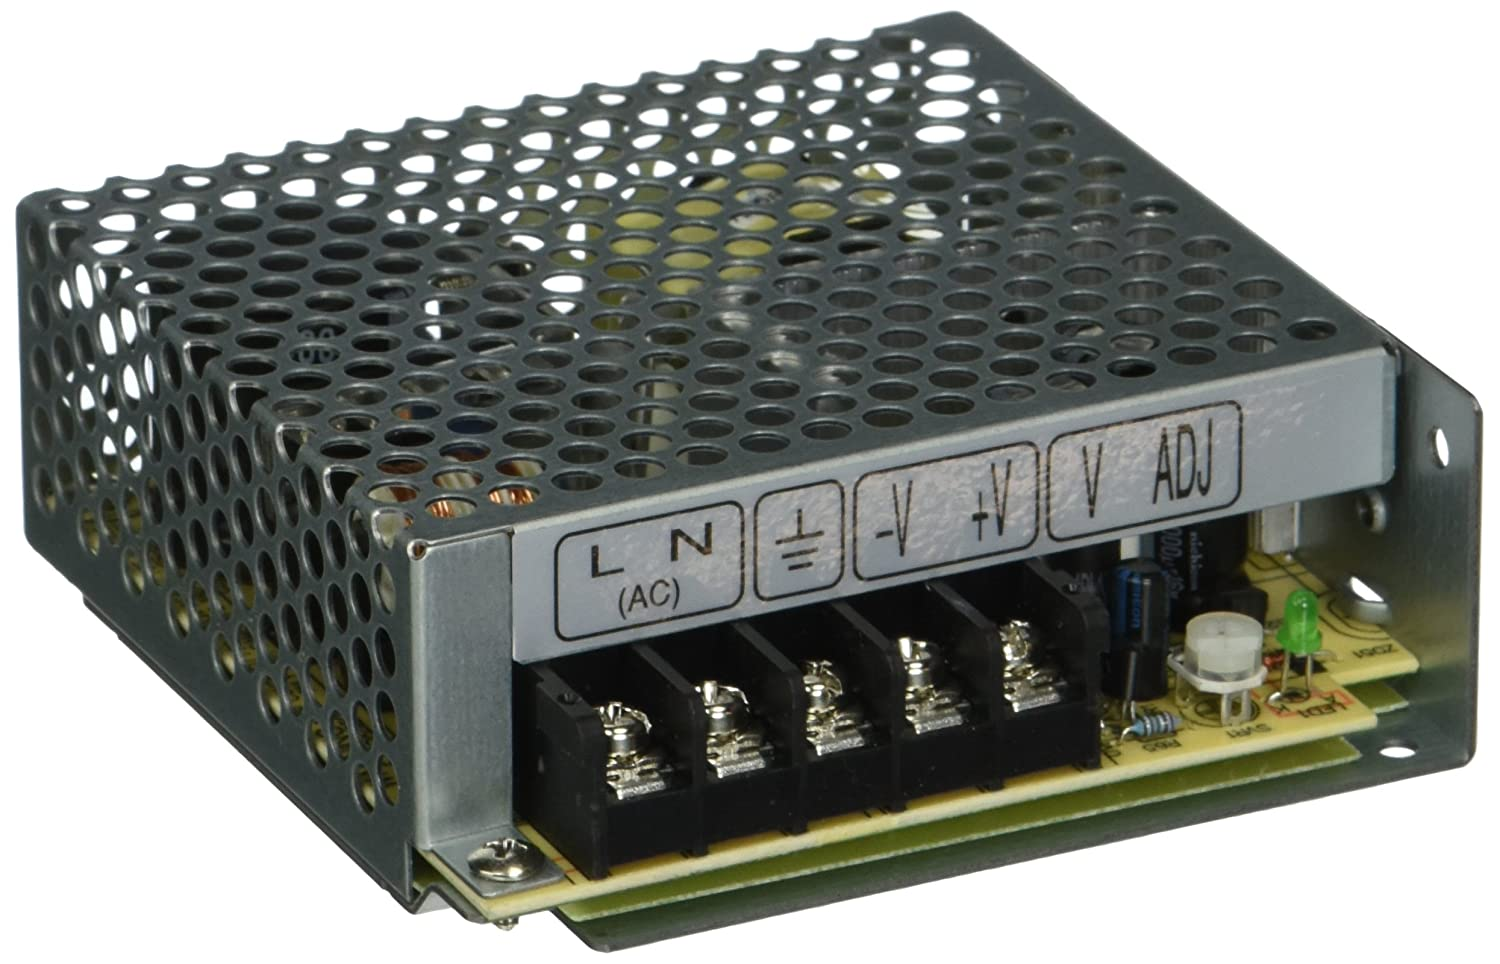 MEAN WELL RS-50-12 AC to DC Power Supply, Single Output, 12V, 4.2 Amp, 50.4W, 1.5